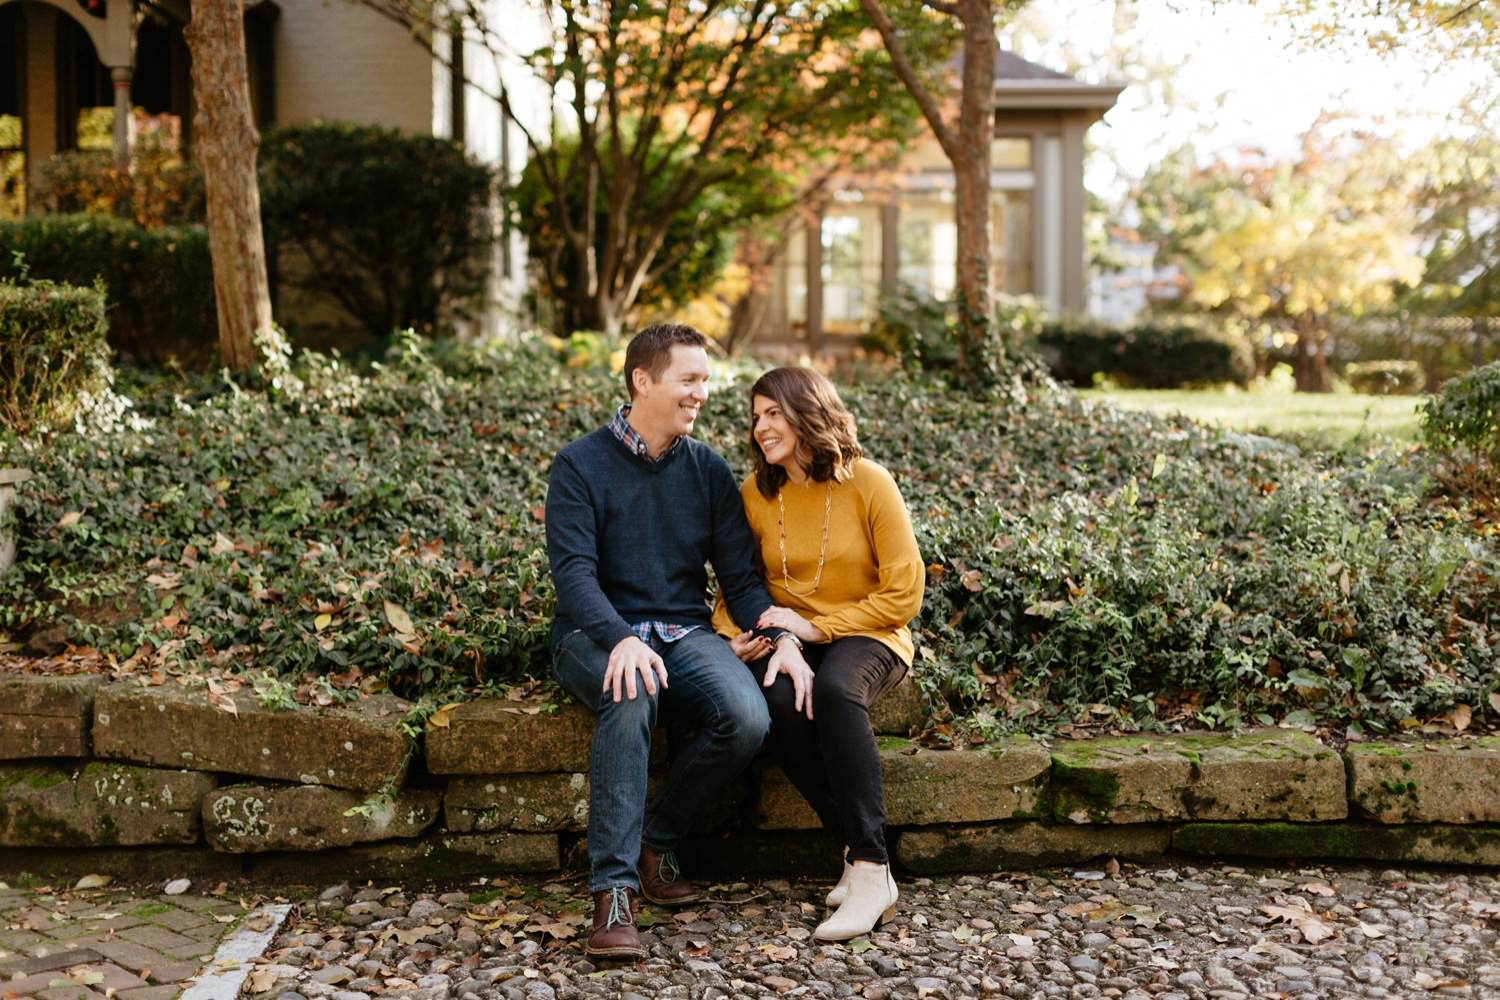 lockerbie-square-engagement-session-indianapolis-engagement-photographer011.JPG